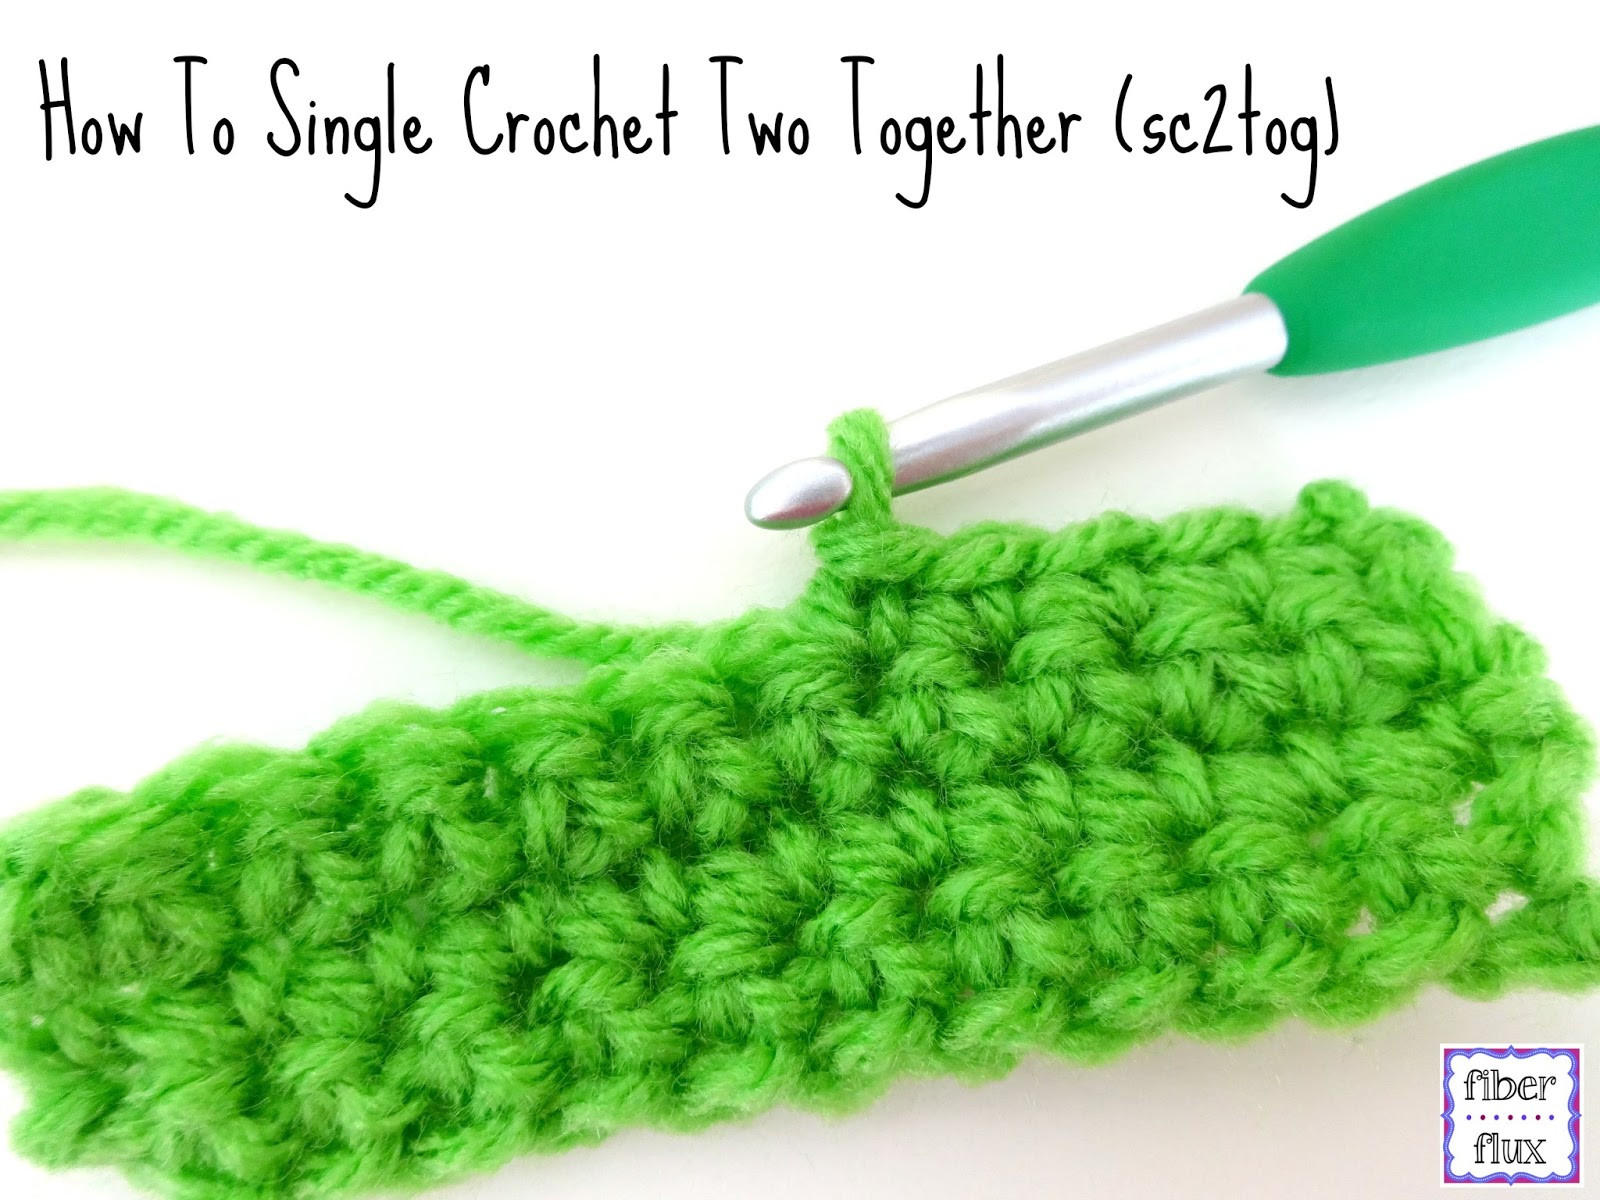 Single Crochet Stitch Elegant Fiber Flux How to Single Crochet Two to Her or Sc2tog Of Delightful 40 Pictures Single Crochet Stitch